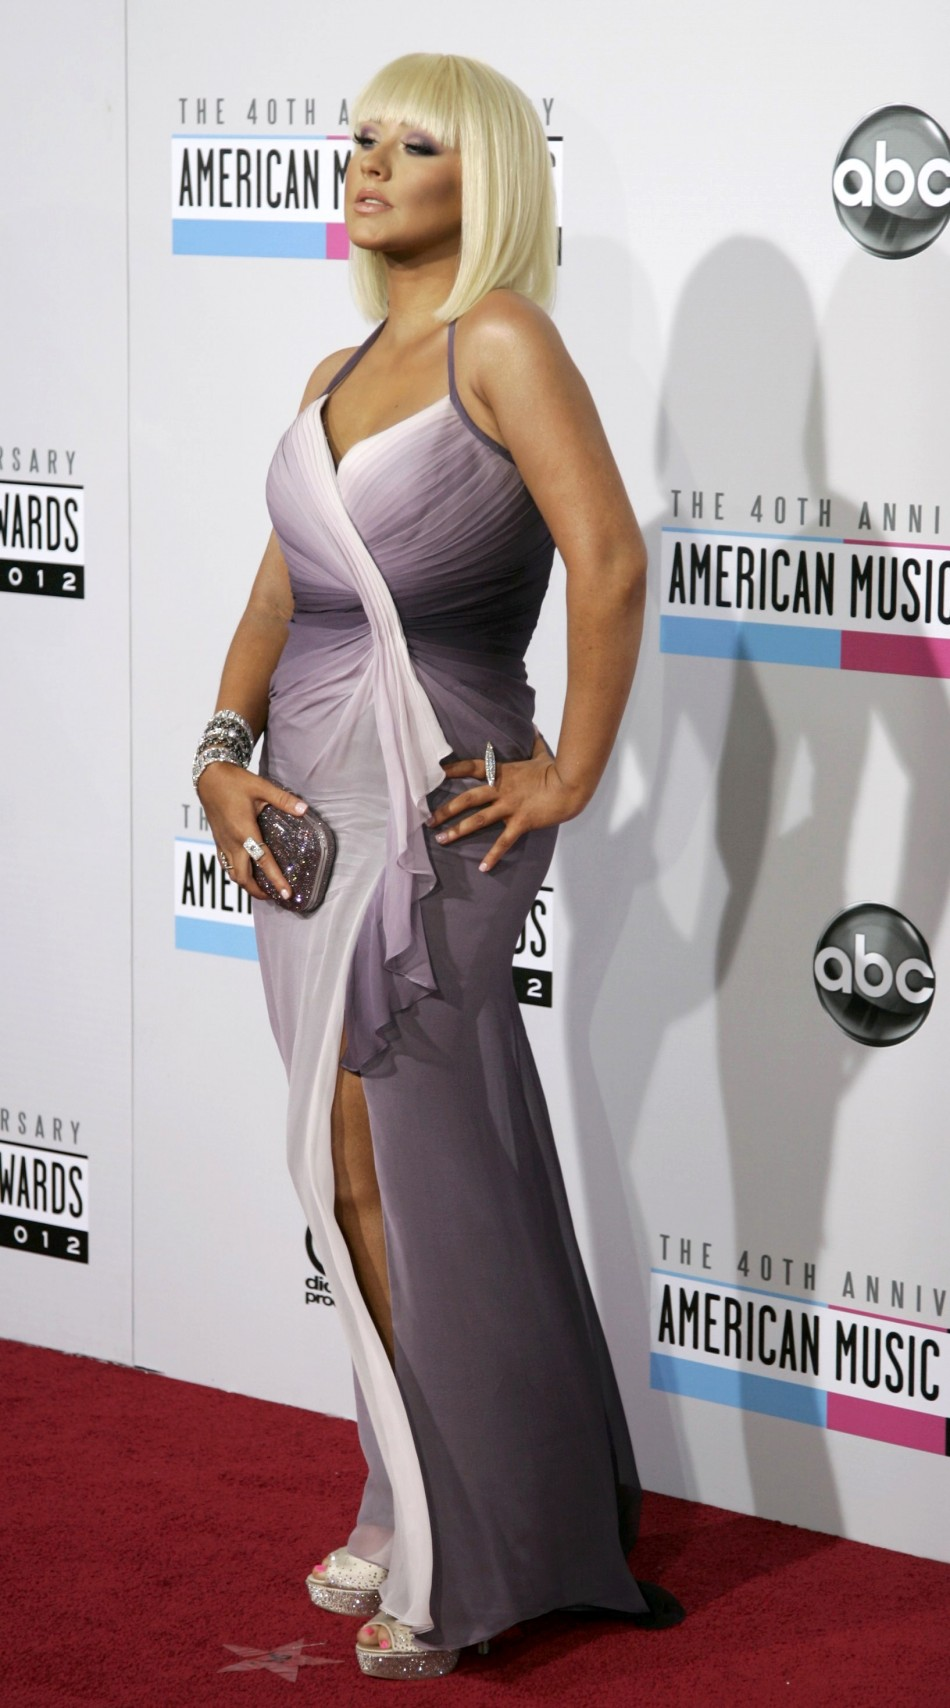 Christina Aguilera arrives at the 40th American Music Awards in Los Angeles